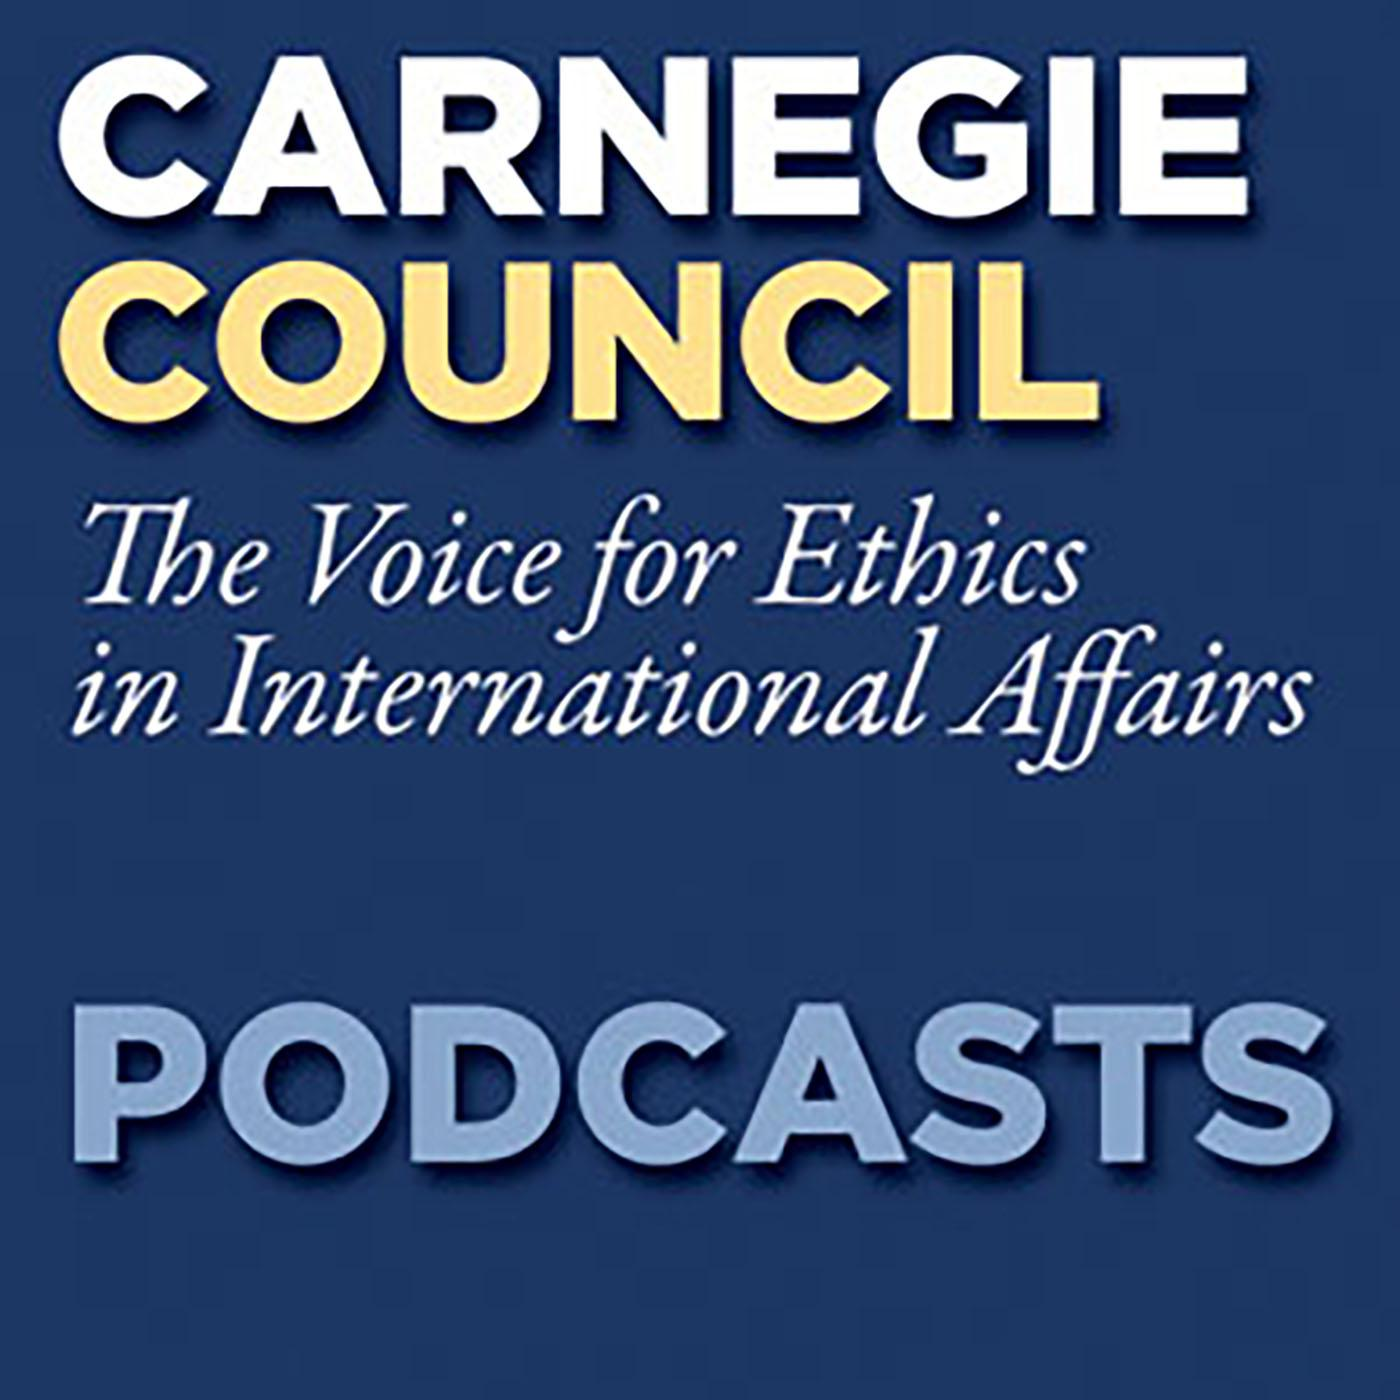 Afghanistan and Pakistan PDF (podcast) - Carnegie Council